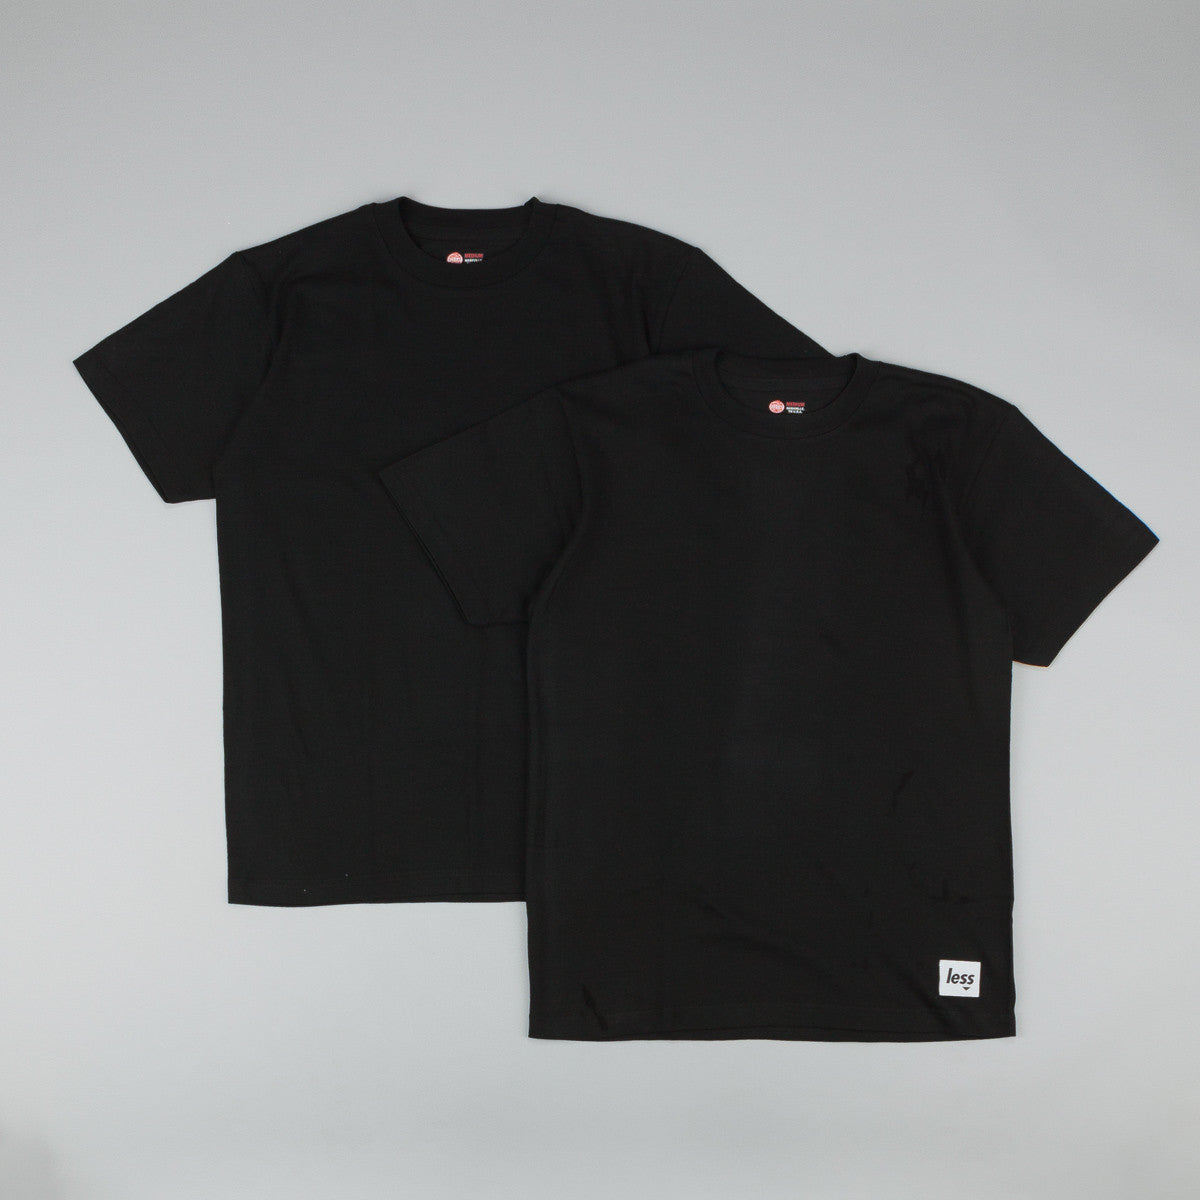 Less x Red Kap Single Jersey 2 Pack T-Shirt